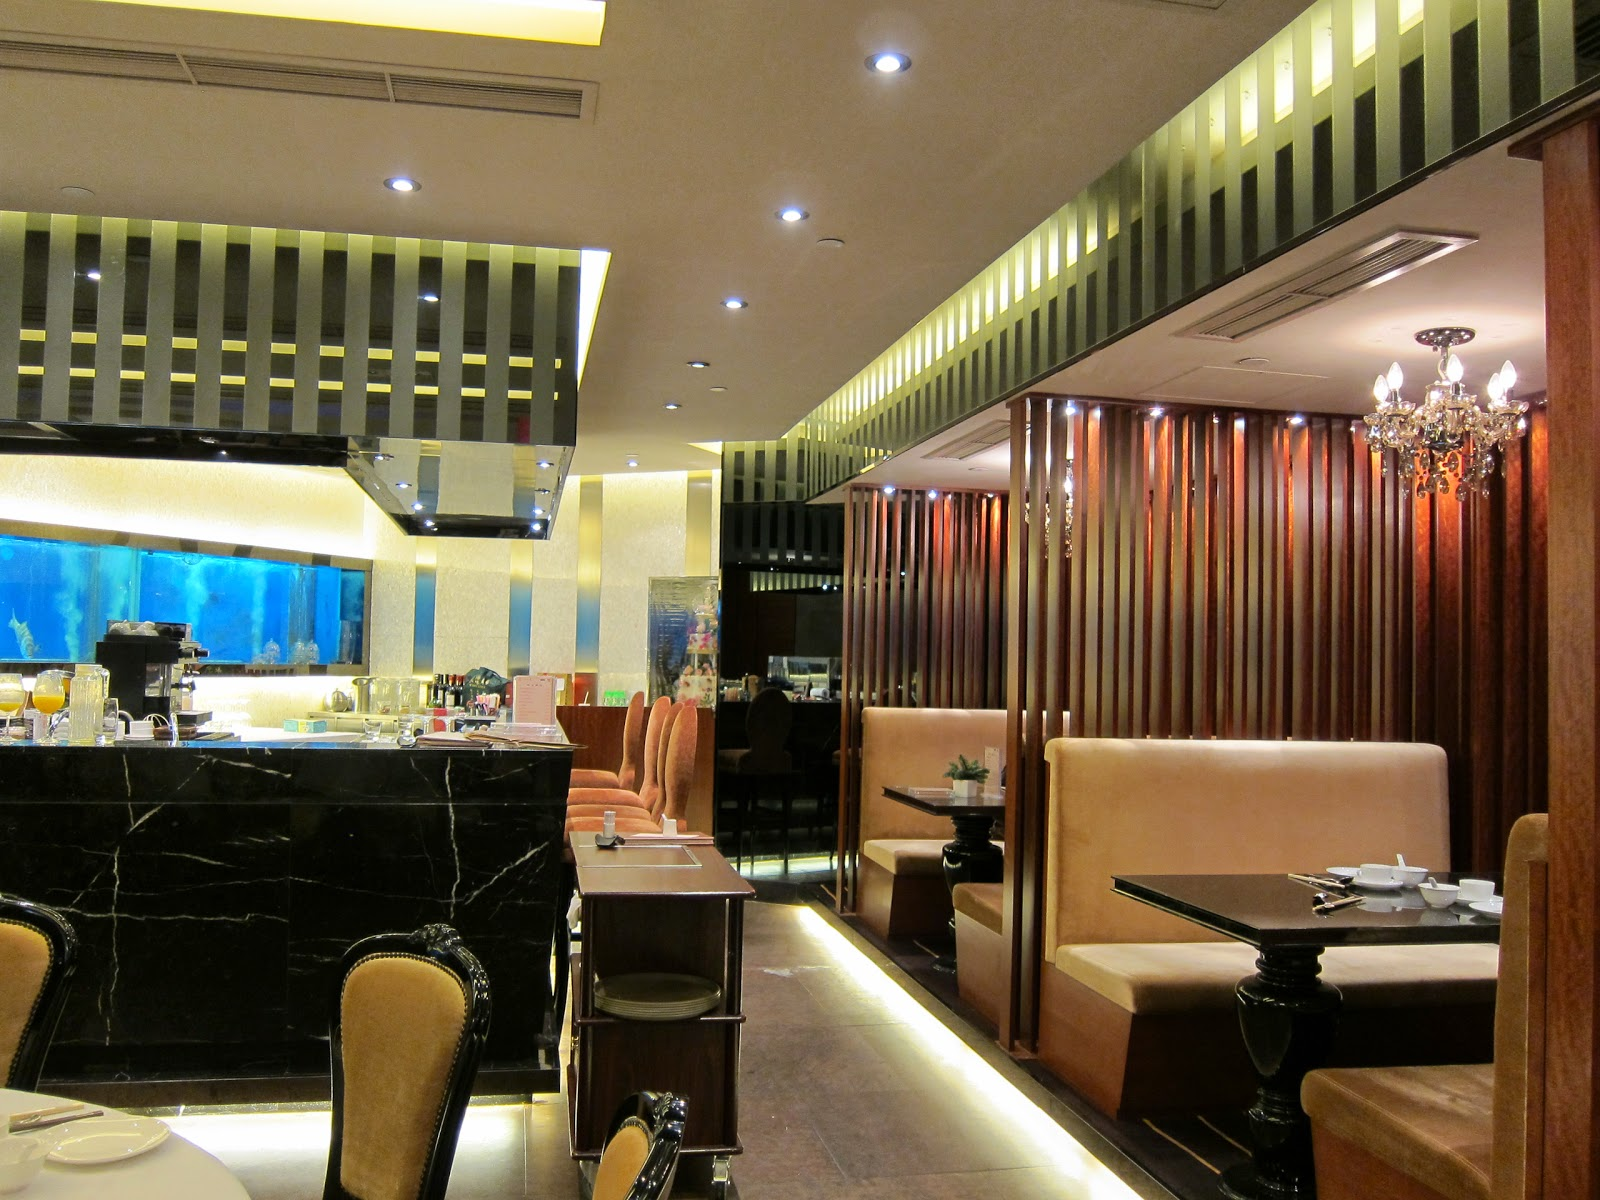 Plans For Building Restaurant Booth - Interior Design Ideas